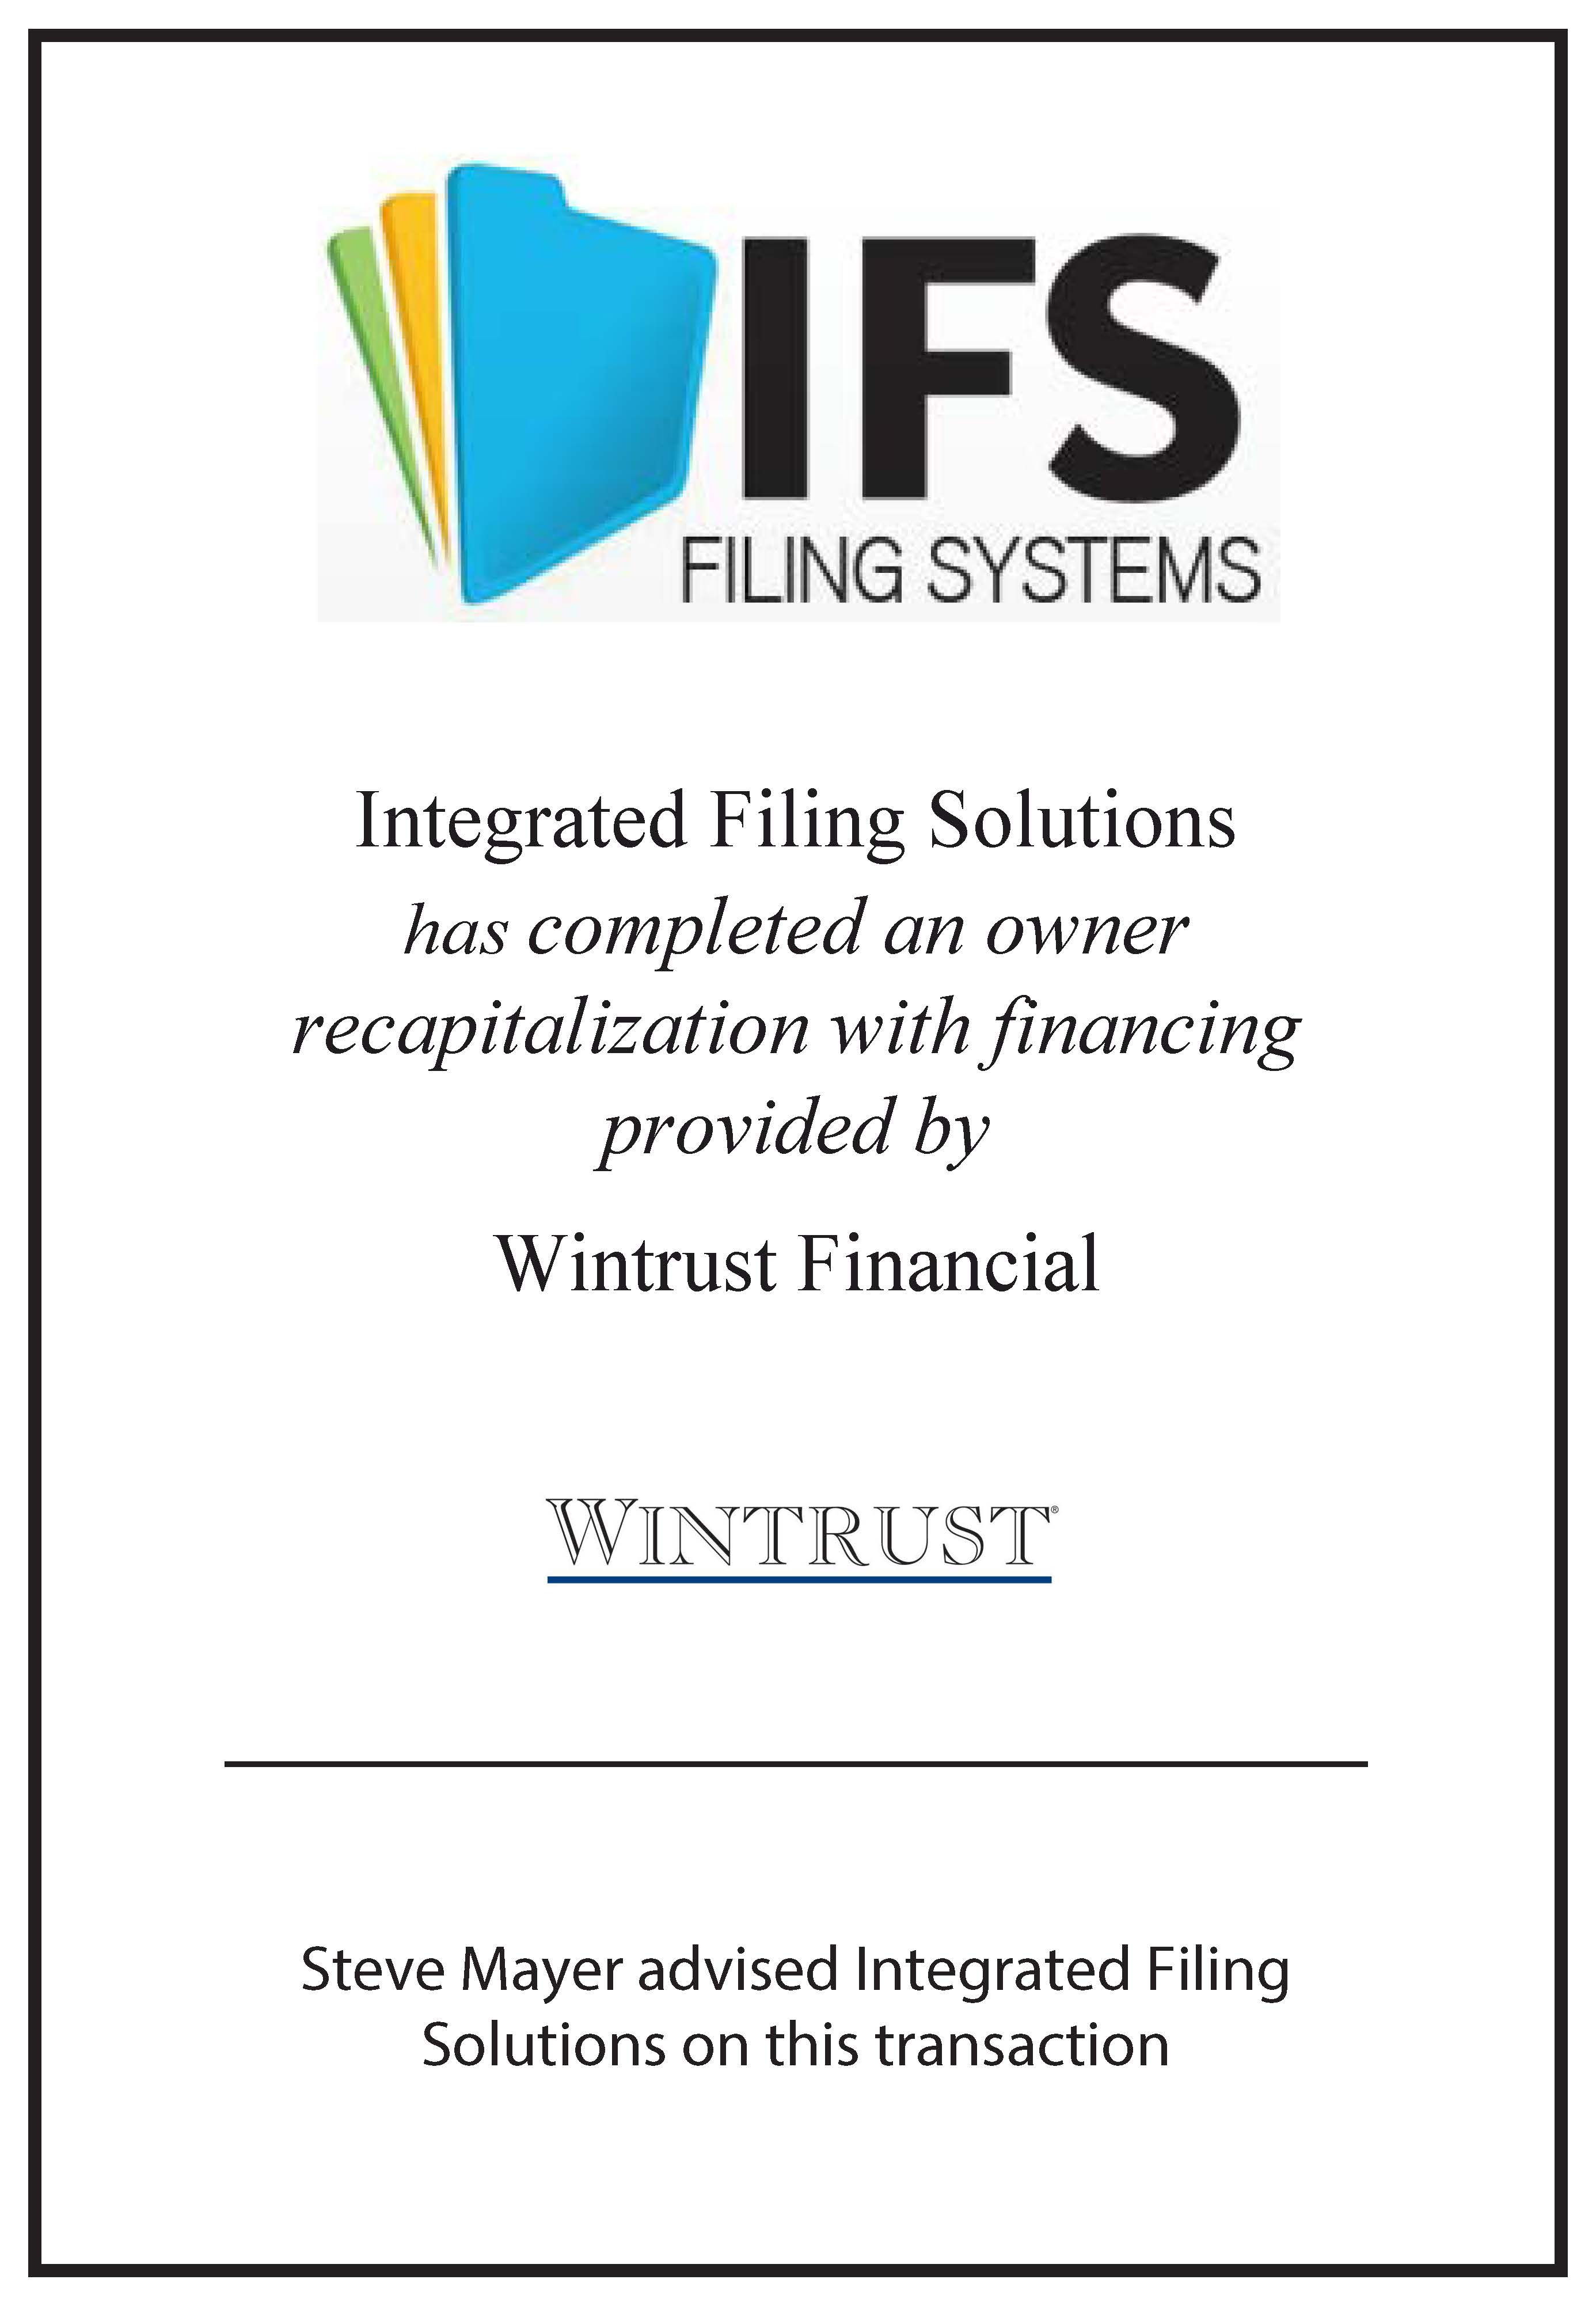 Integrated Filing Solutions